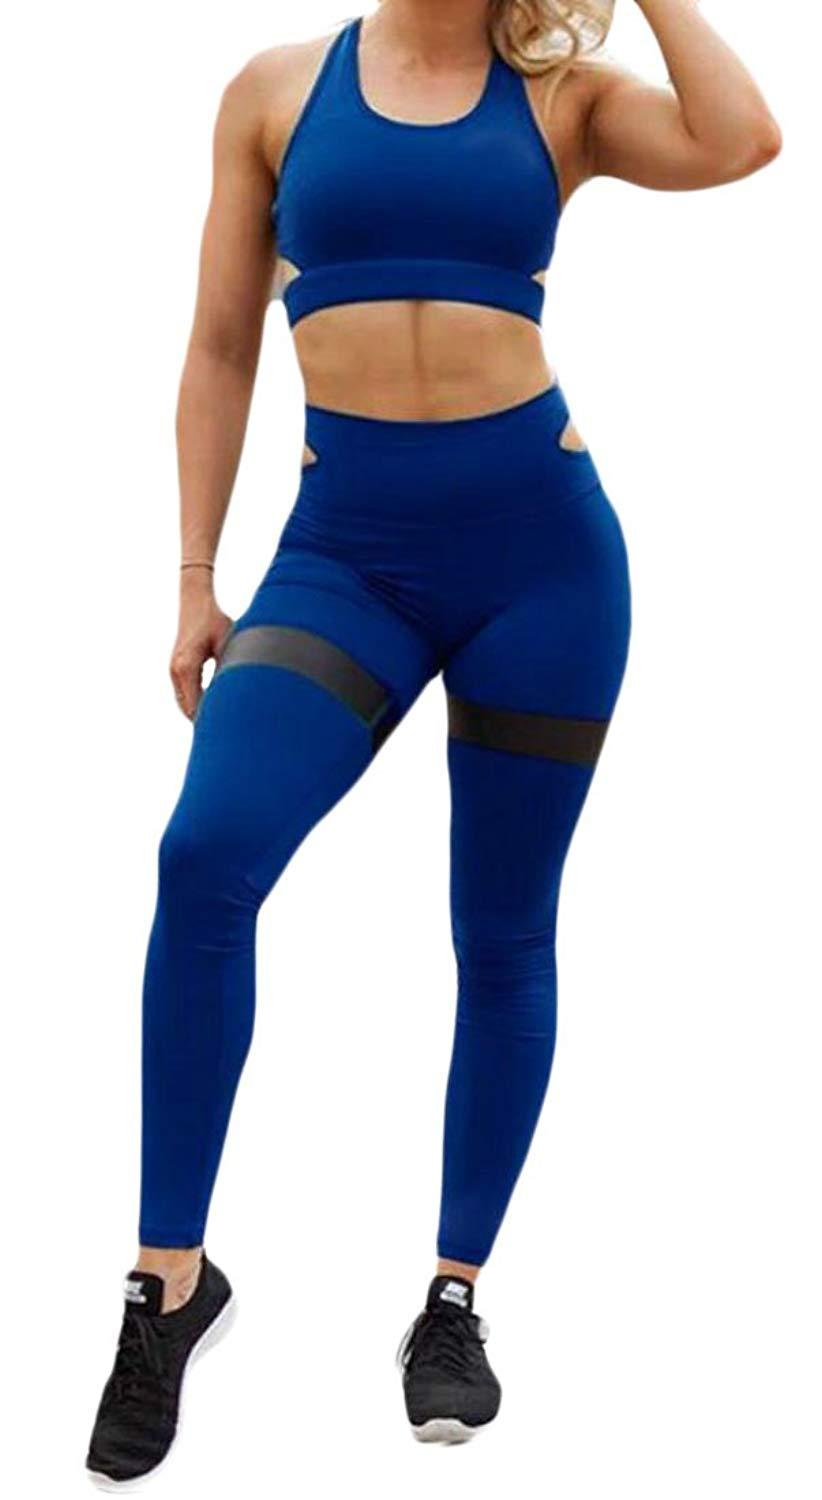 OTW-Women Workout Two Piece Outfits Crop Top and Leggings Pants Solid Yuga Outfits